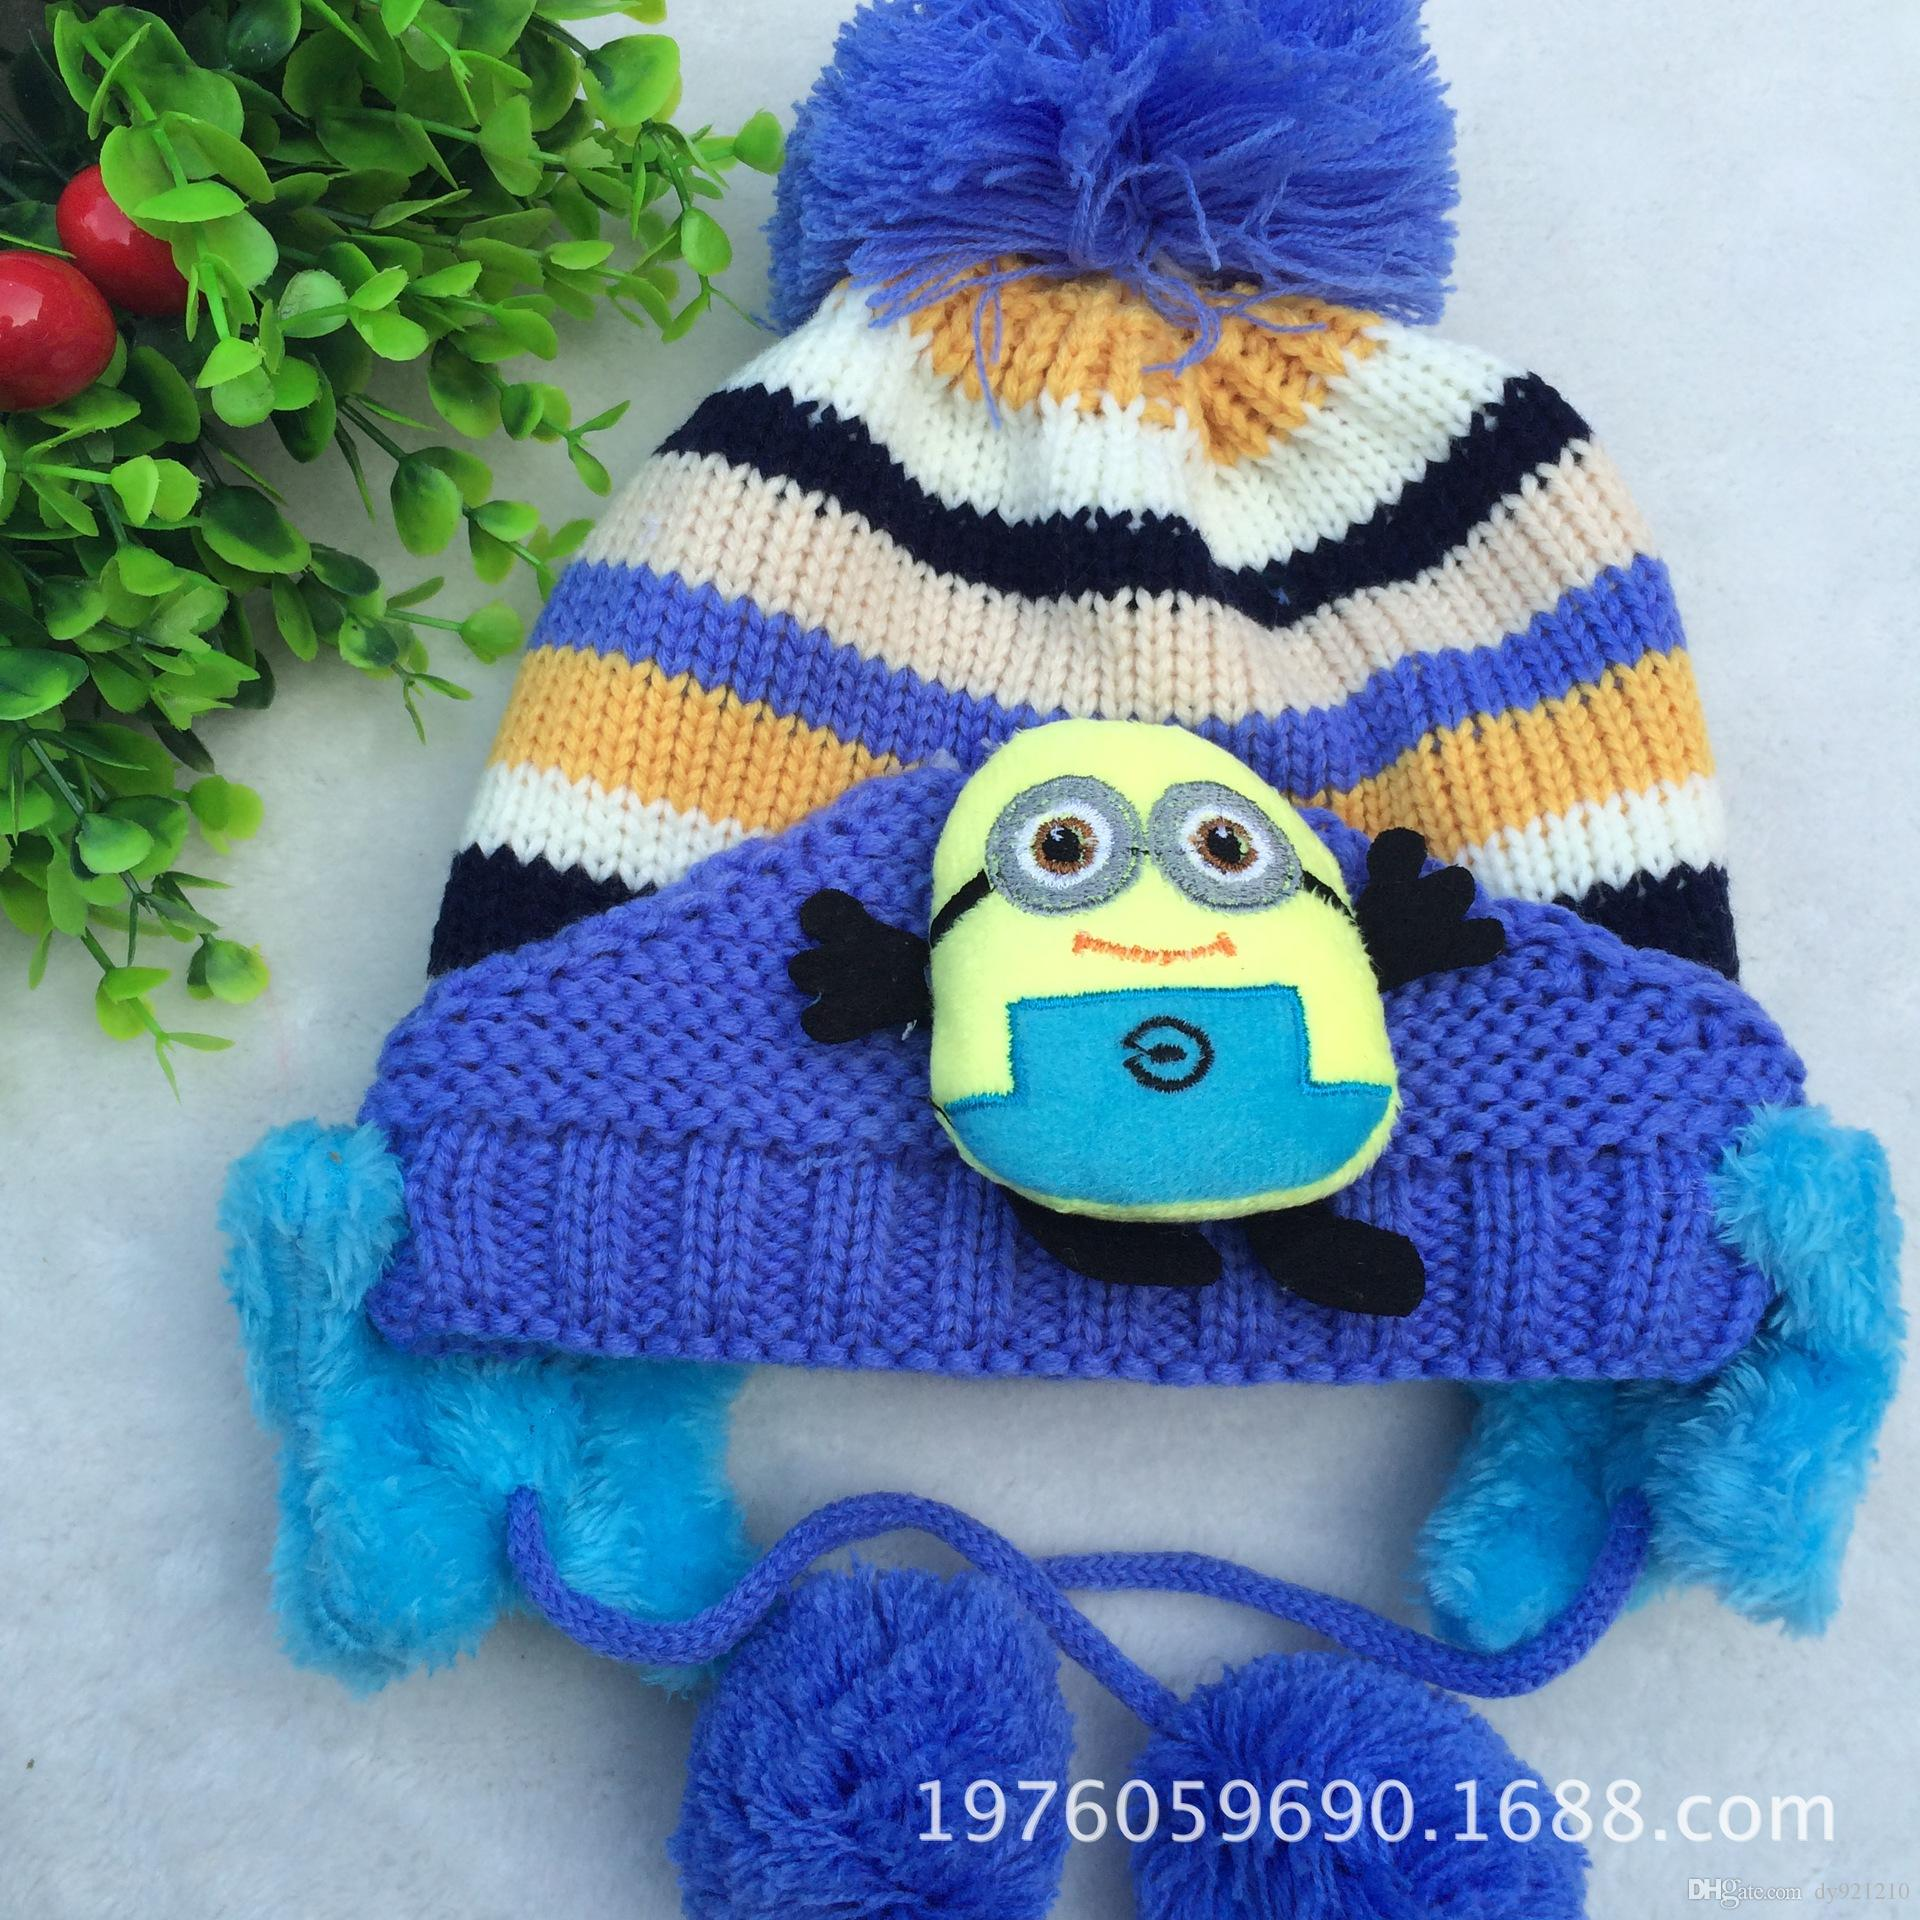 Online cheap 2014 new minion hat crochet pattern despicable me hat online cheap 2014 new minion hat crochet pattern despicable me hat with earflap crochet baby owl beanie hootbelle hat animal hat available by dy921210 bankloansurffo Image collections